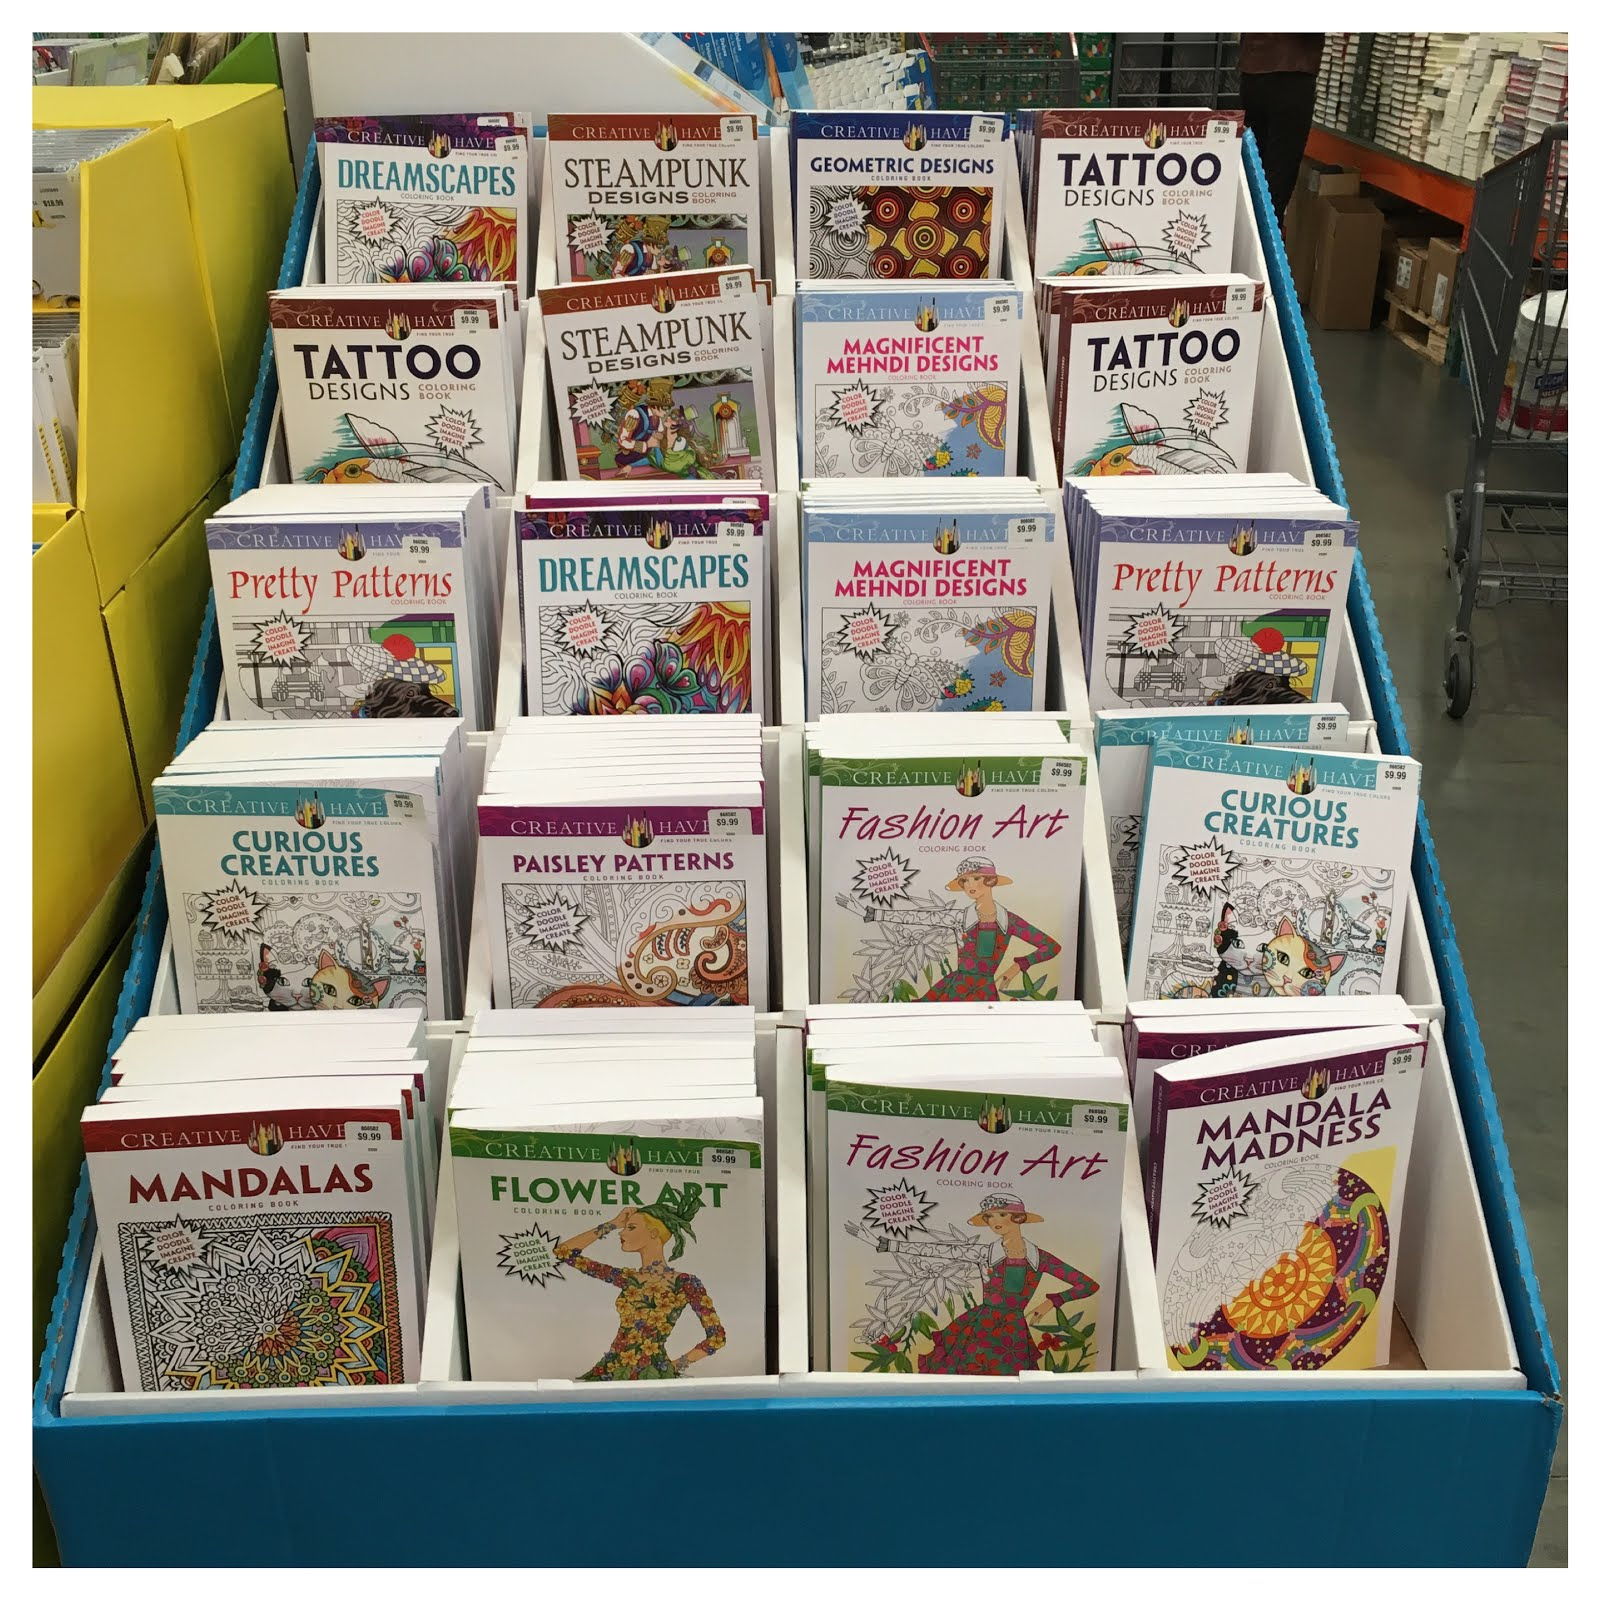 The Color Me Your Way Coloring Book Series From PJC Smart Have Large 16 X 11 Oversized Pages